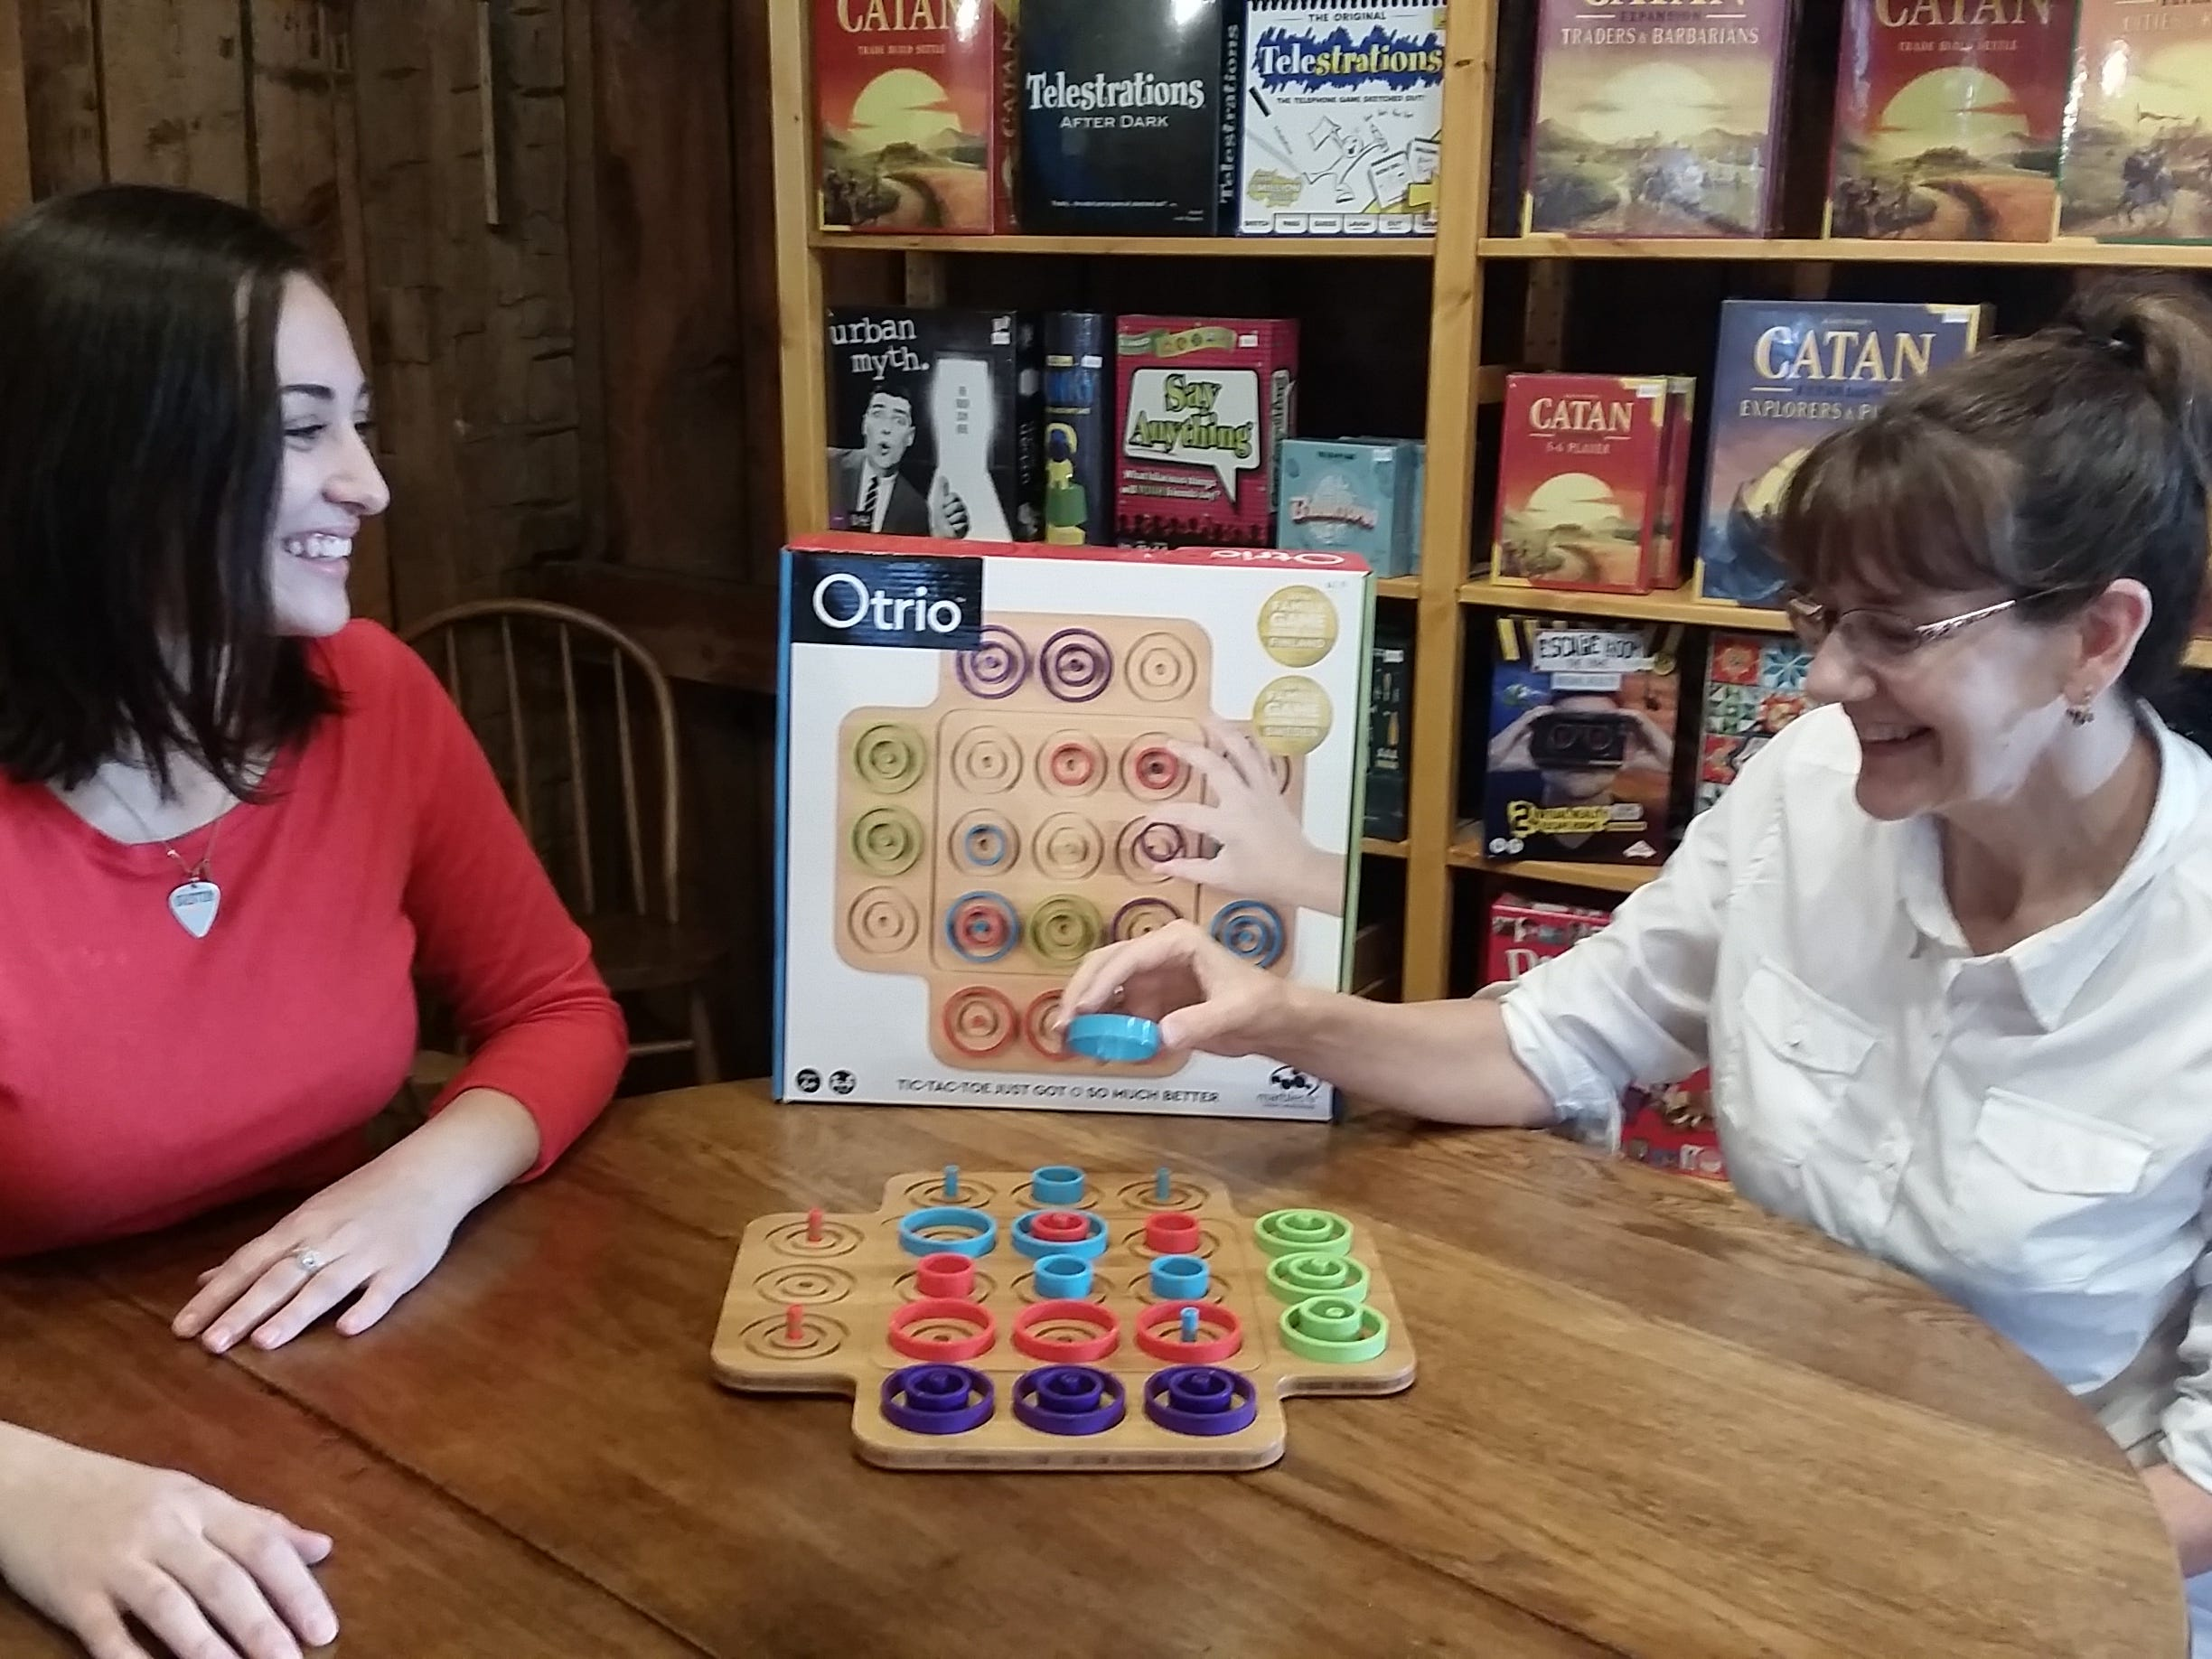 Maria Luther of The Smiley Barn loves Otrio, which she describes as a more strategic version of Tic Tac Toe, which is easy enough for young kids and fun enough for older kids and parents.